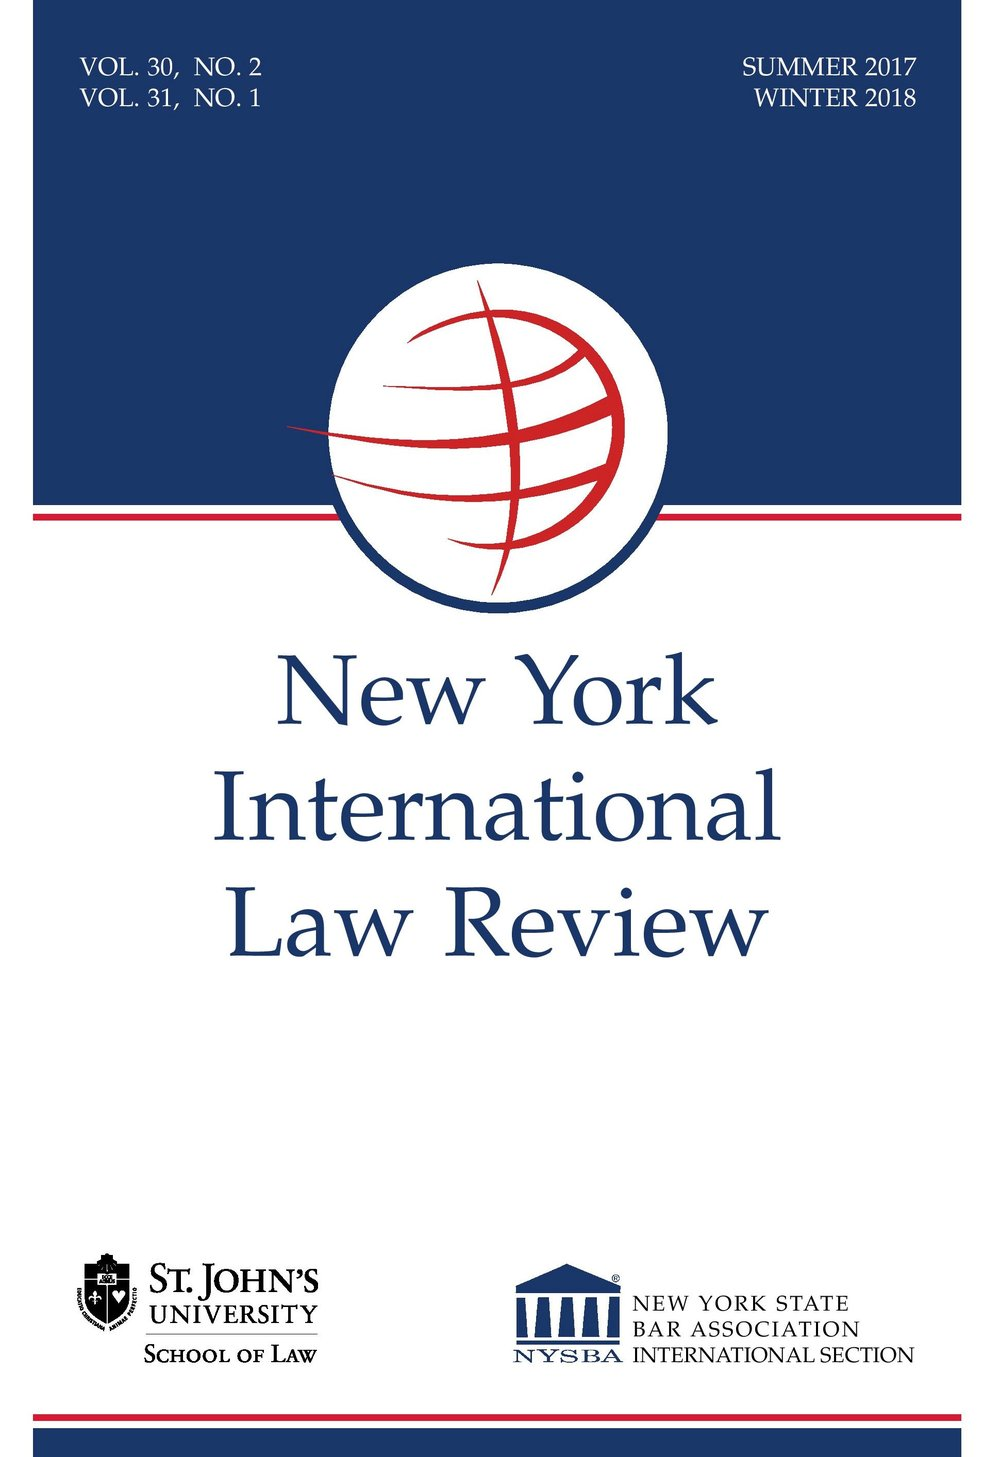 NY Intl Law Review - Summer 2017, Winter 2018-page-001.jpg